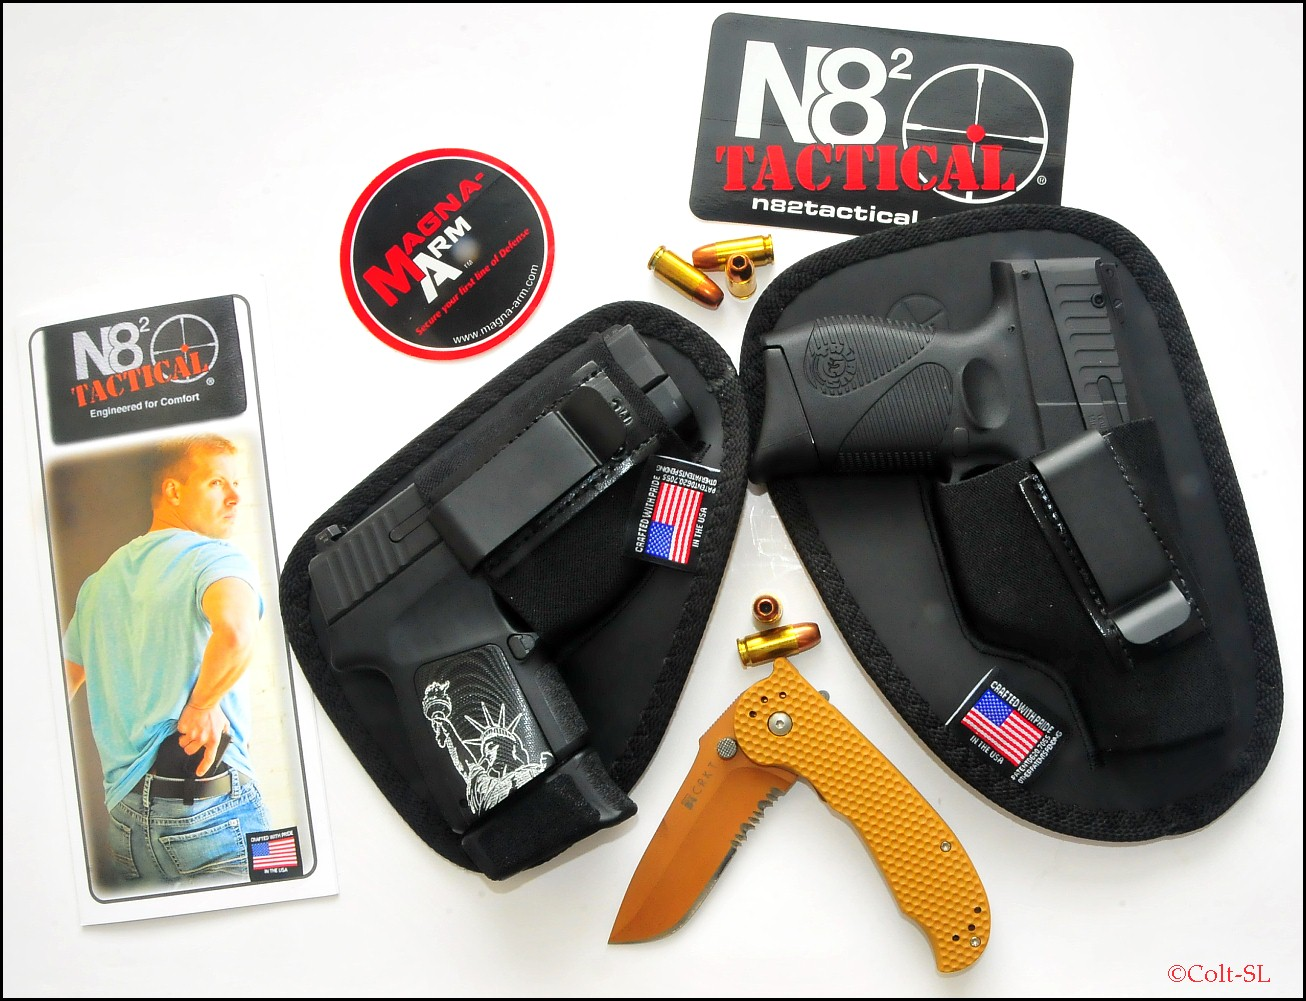 N82 tactical comfortable secure affordable iwb holster for Pro carry shirt tuck